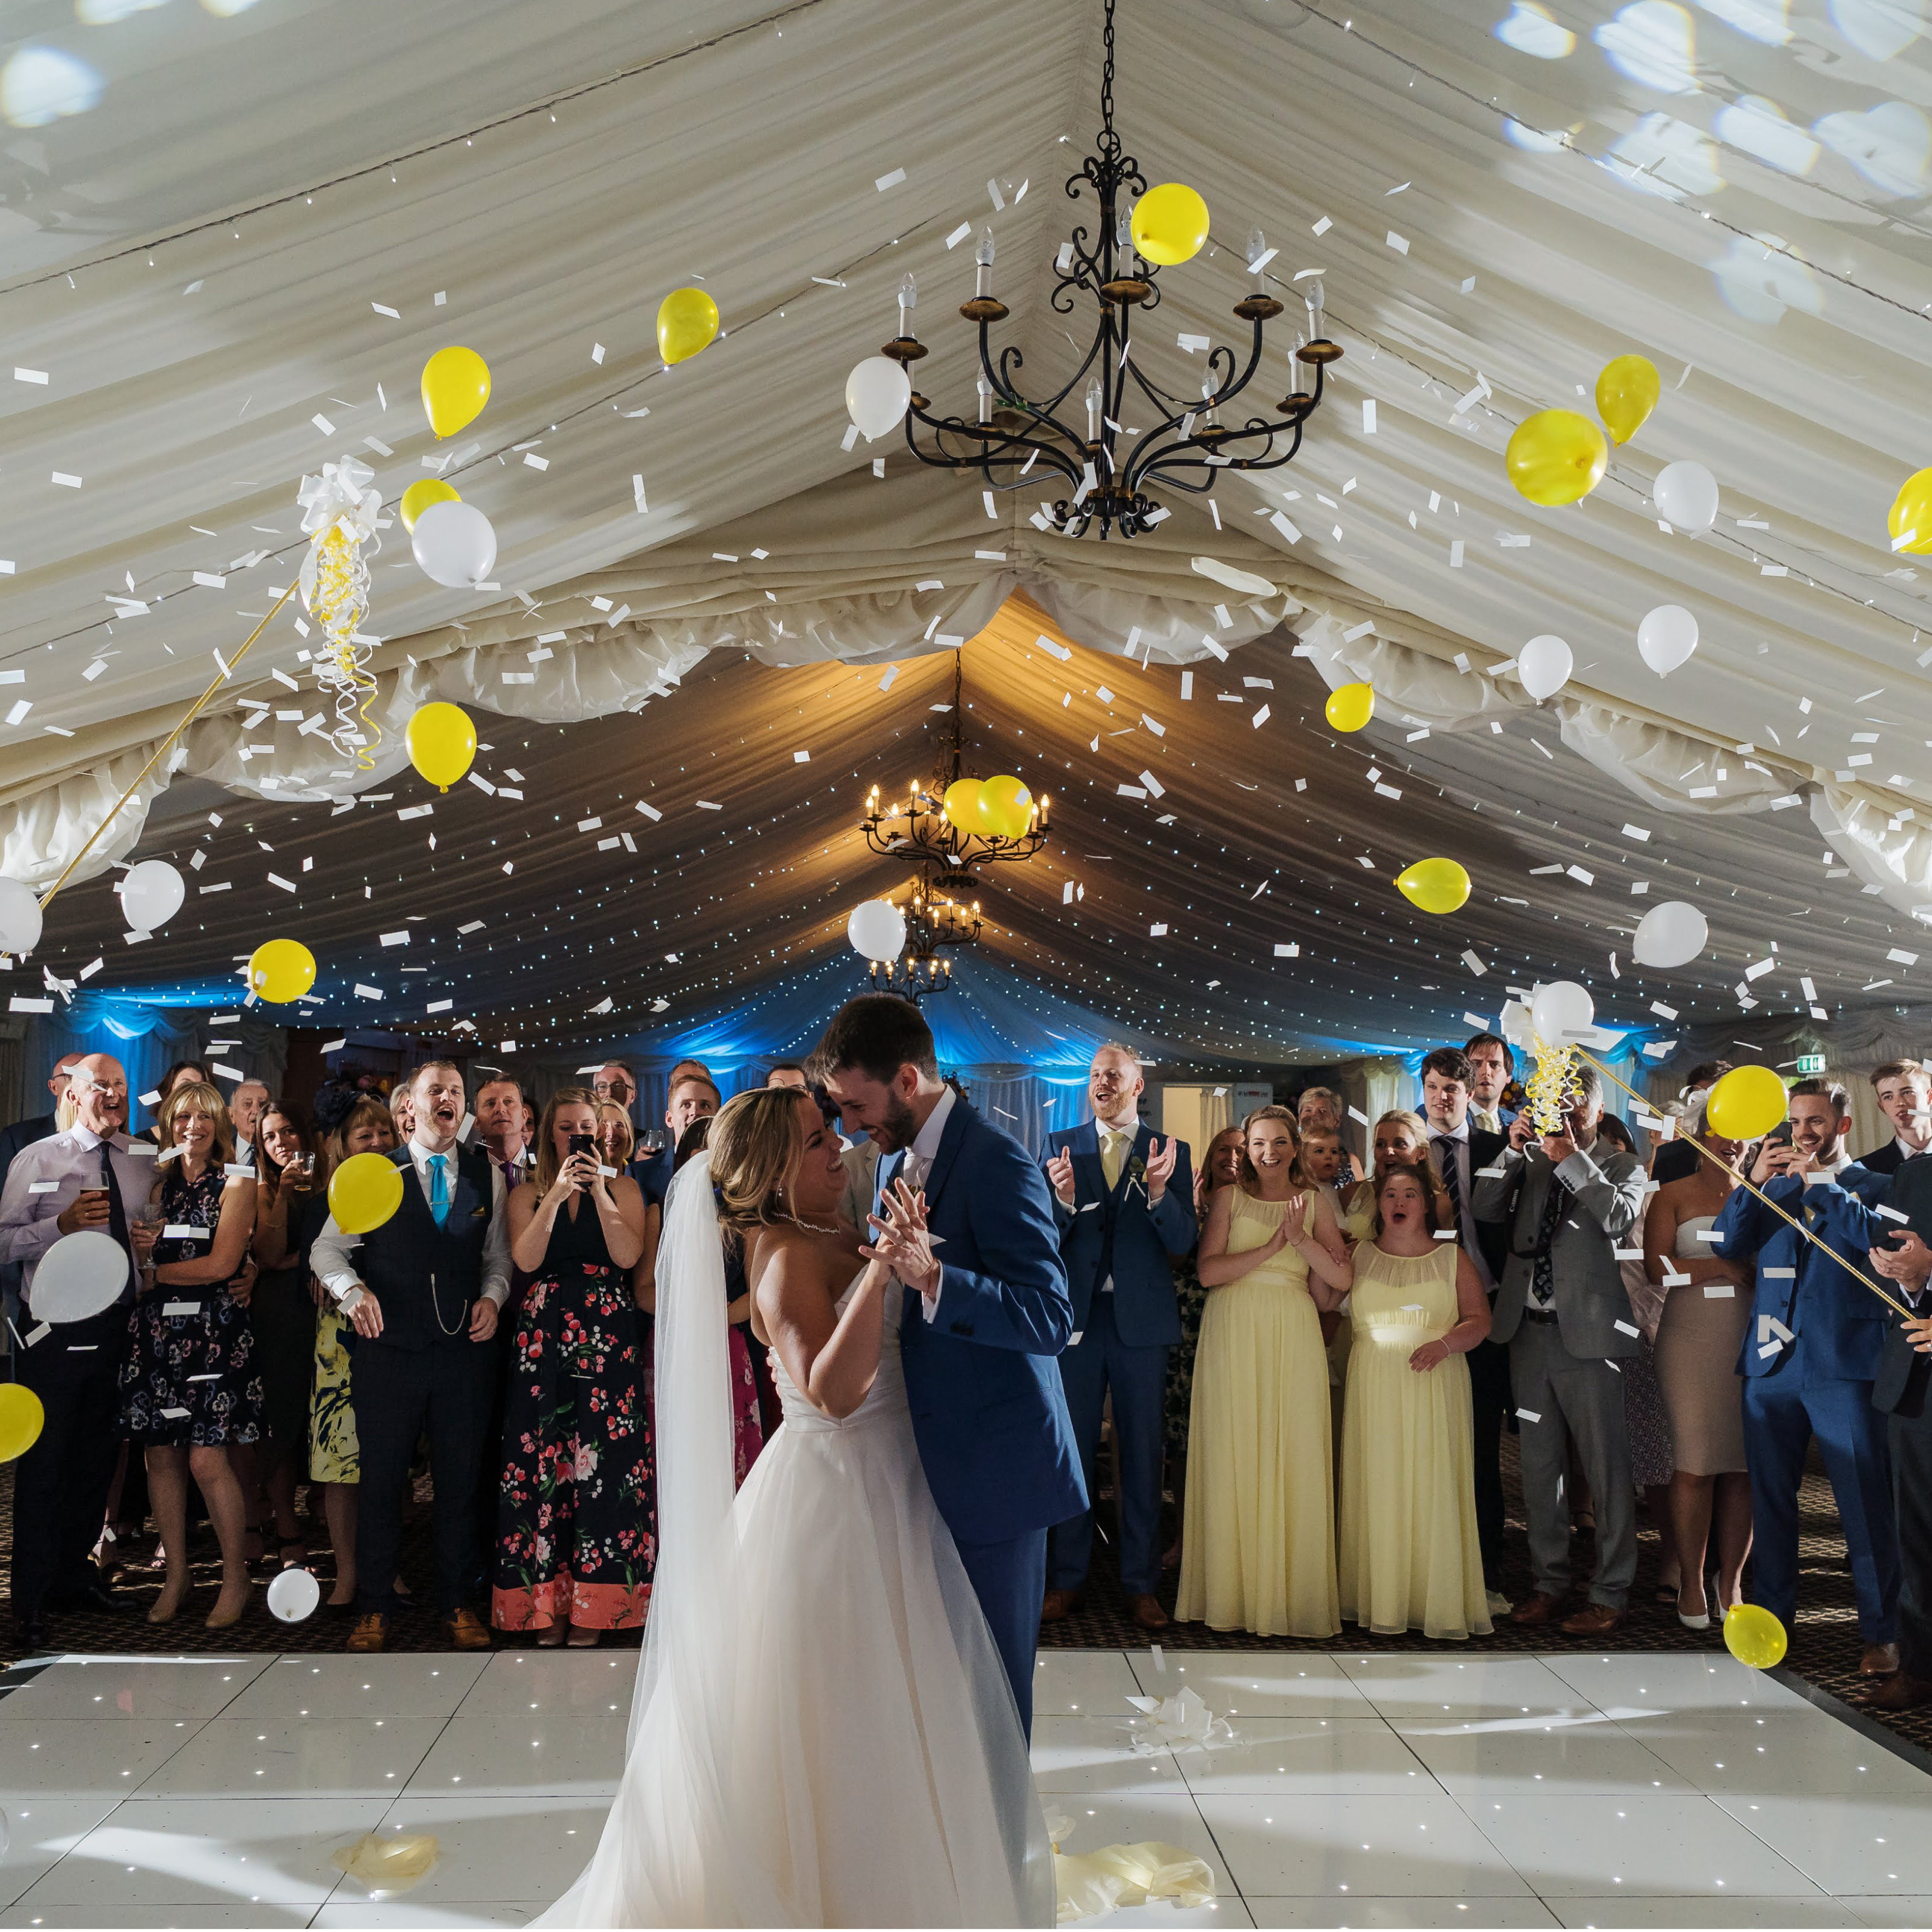 Wedding decorations with balloons, first dance with balloons